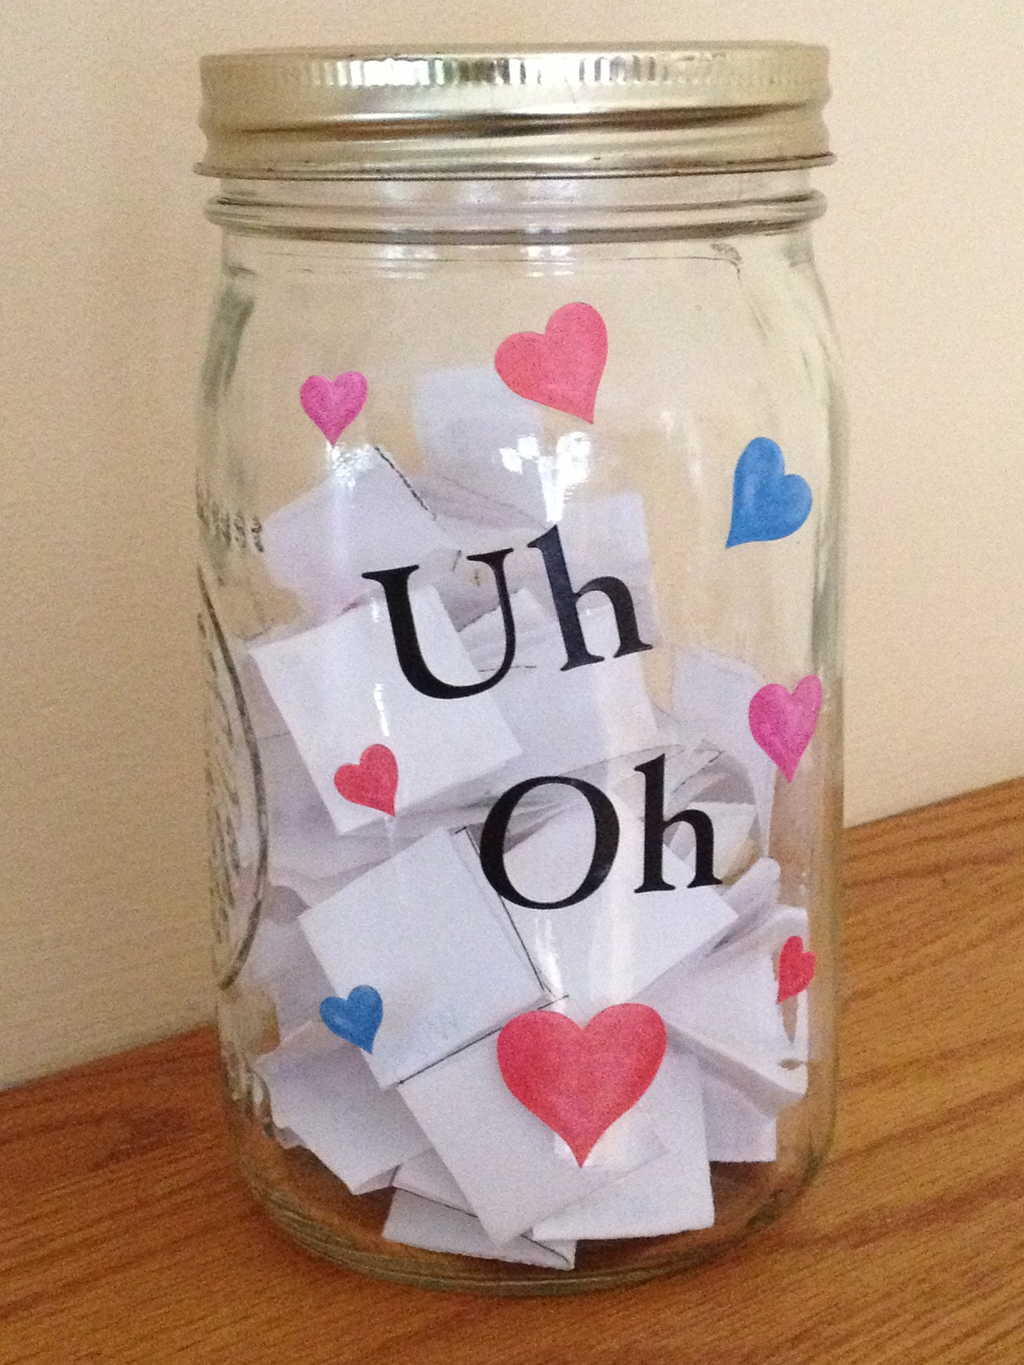 a glass jar with strips of paper in it with the text Uh Oh on the outside of the jar and colored hearts